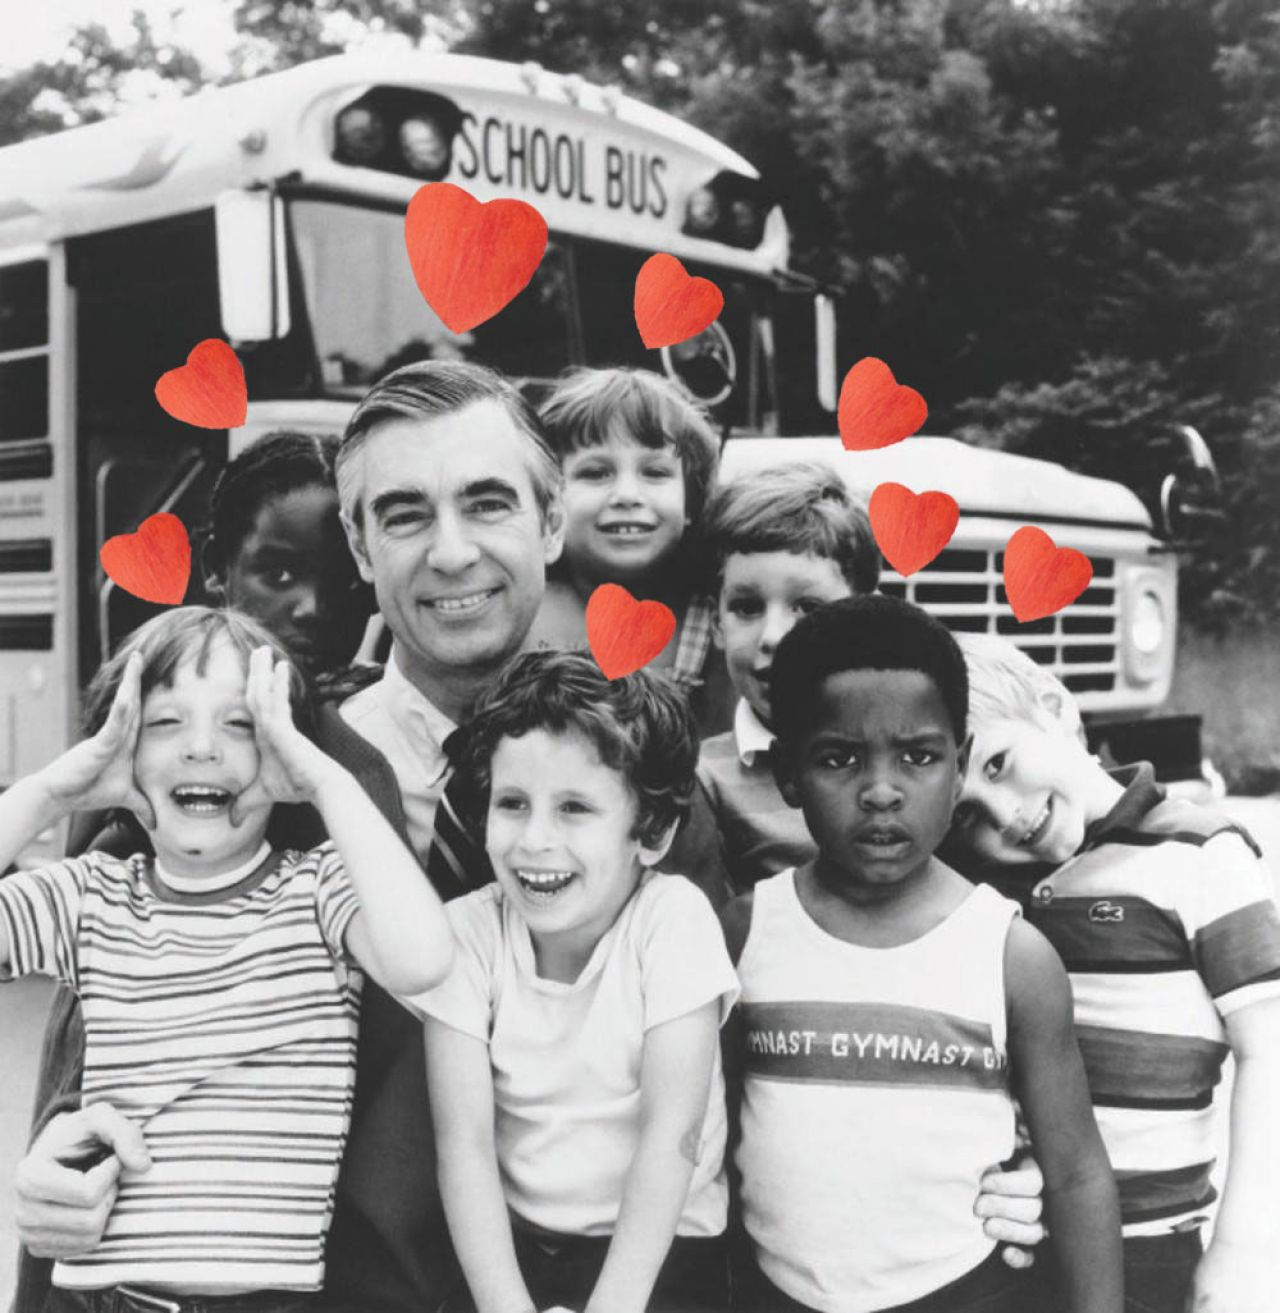 Arkansas and PBS go together like Mister Rogers and the neighborhood.